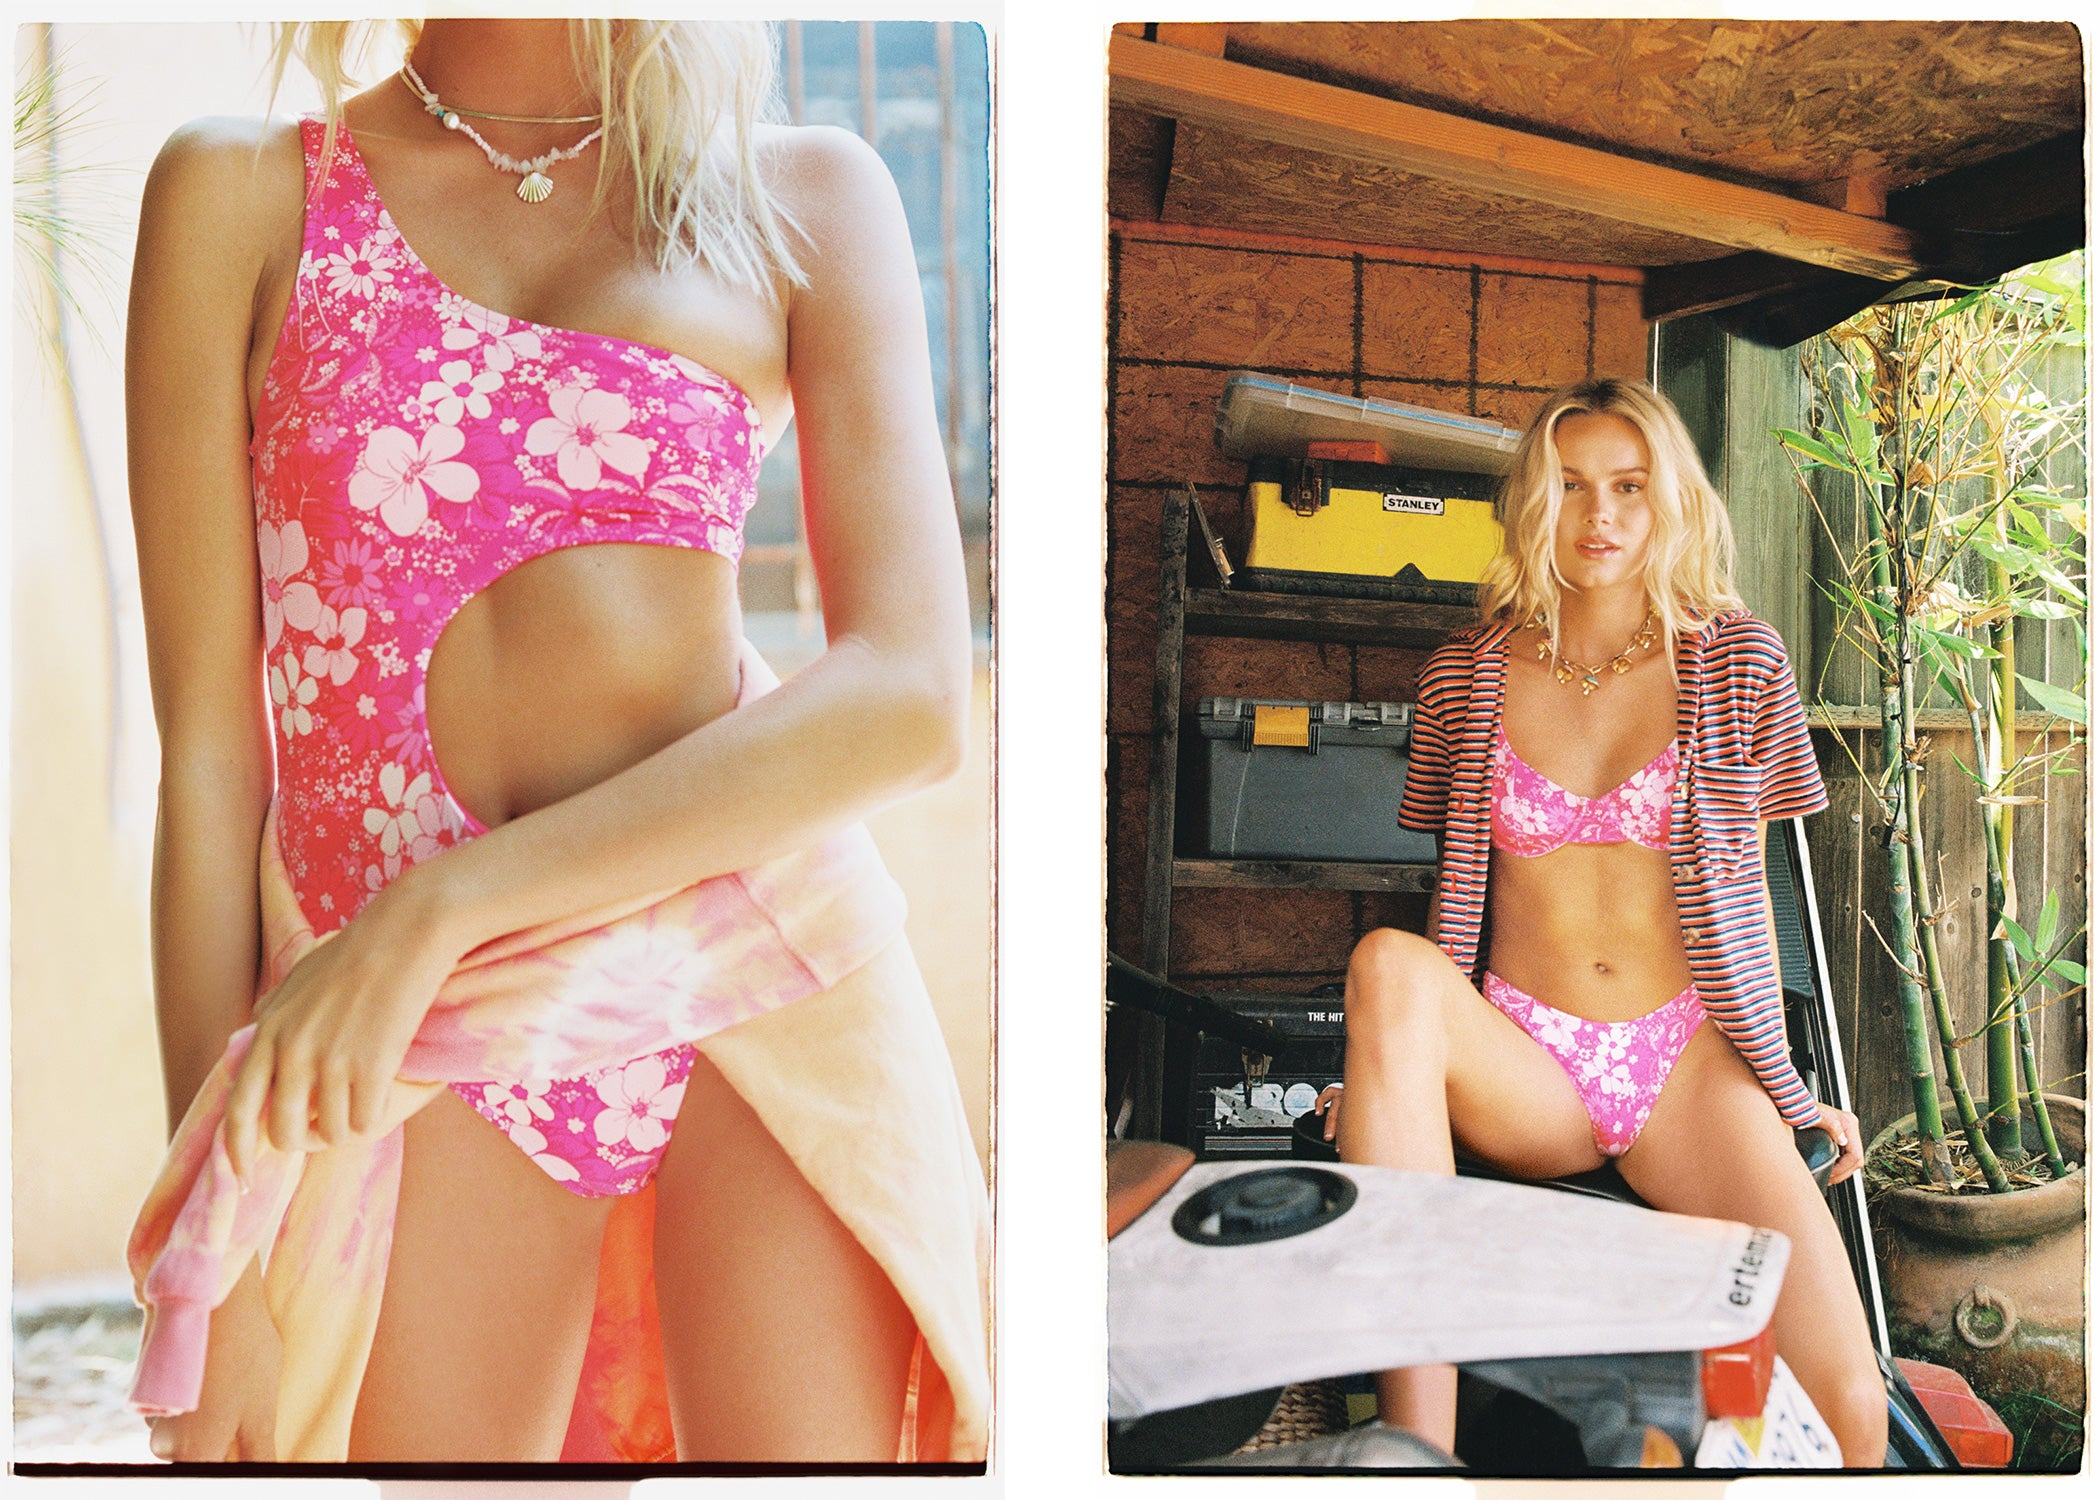 frankies bikinis love in venice collection new hot pink floral bikini